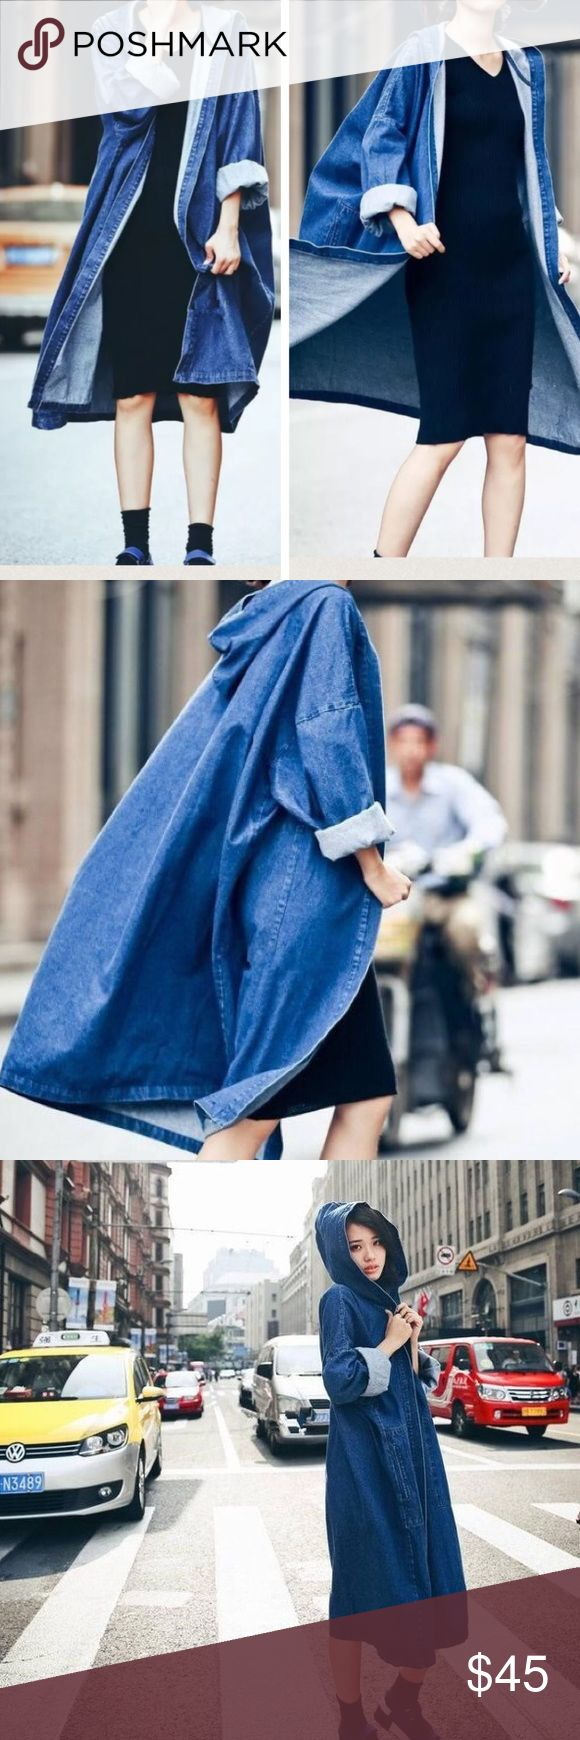 "Open front Denim longline wind coat Blue, Denim with hoodies, great for later summer and fall, winter. Bust and waist is open, US S-Asian M length: 40"", US M-Asian L: length 41 "" US L-Asian XL 42"", US XL-Asian XXL: length 43"" Jackets & Coats"